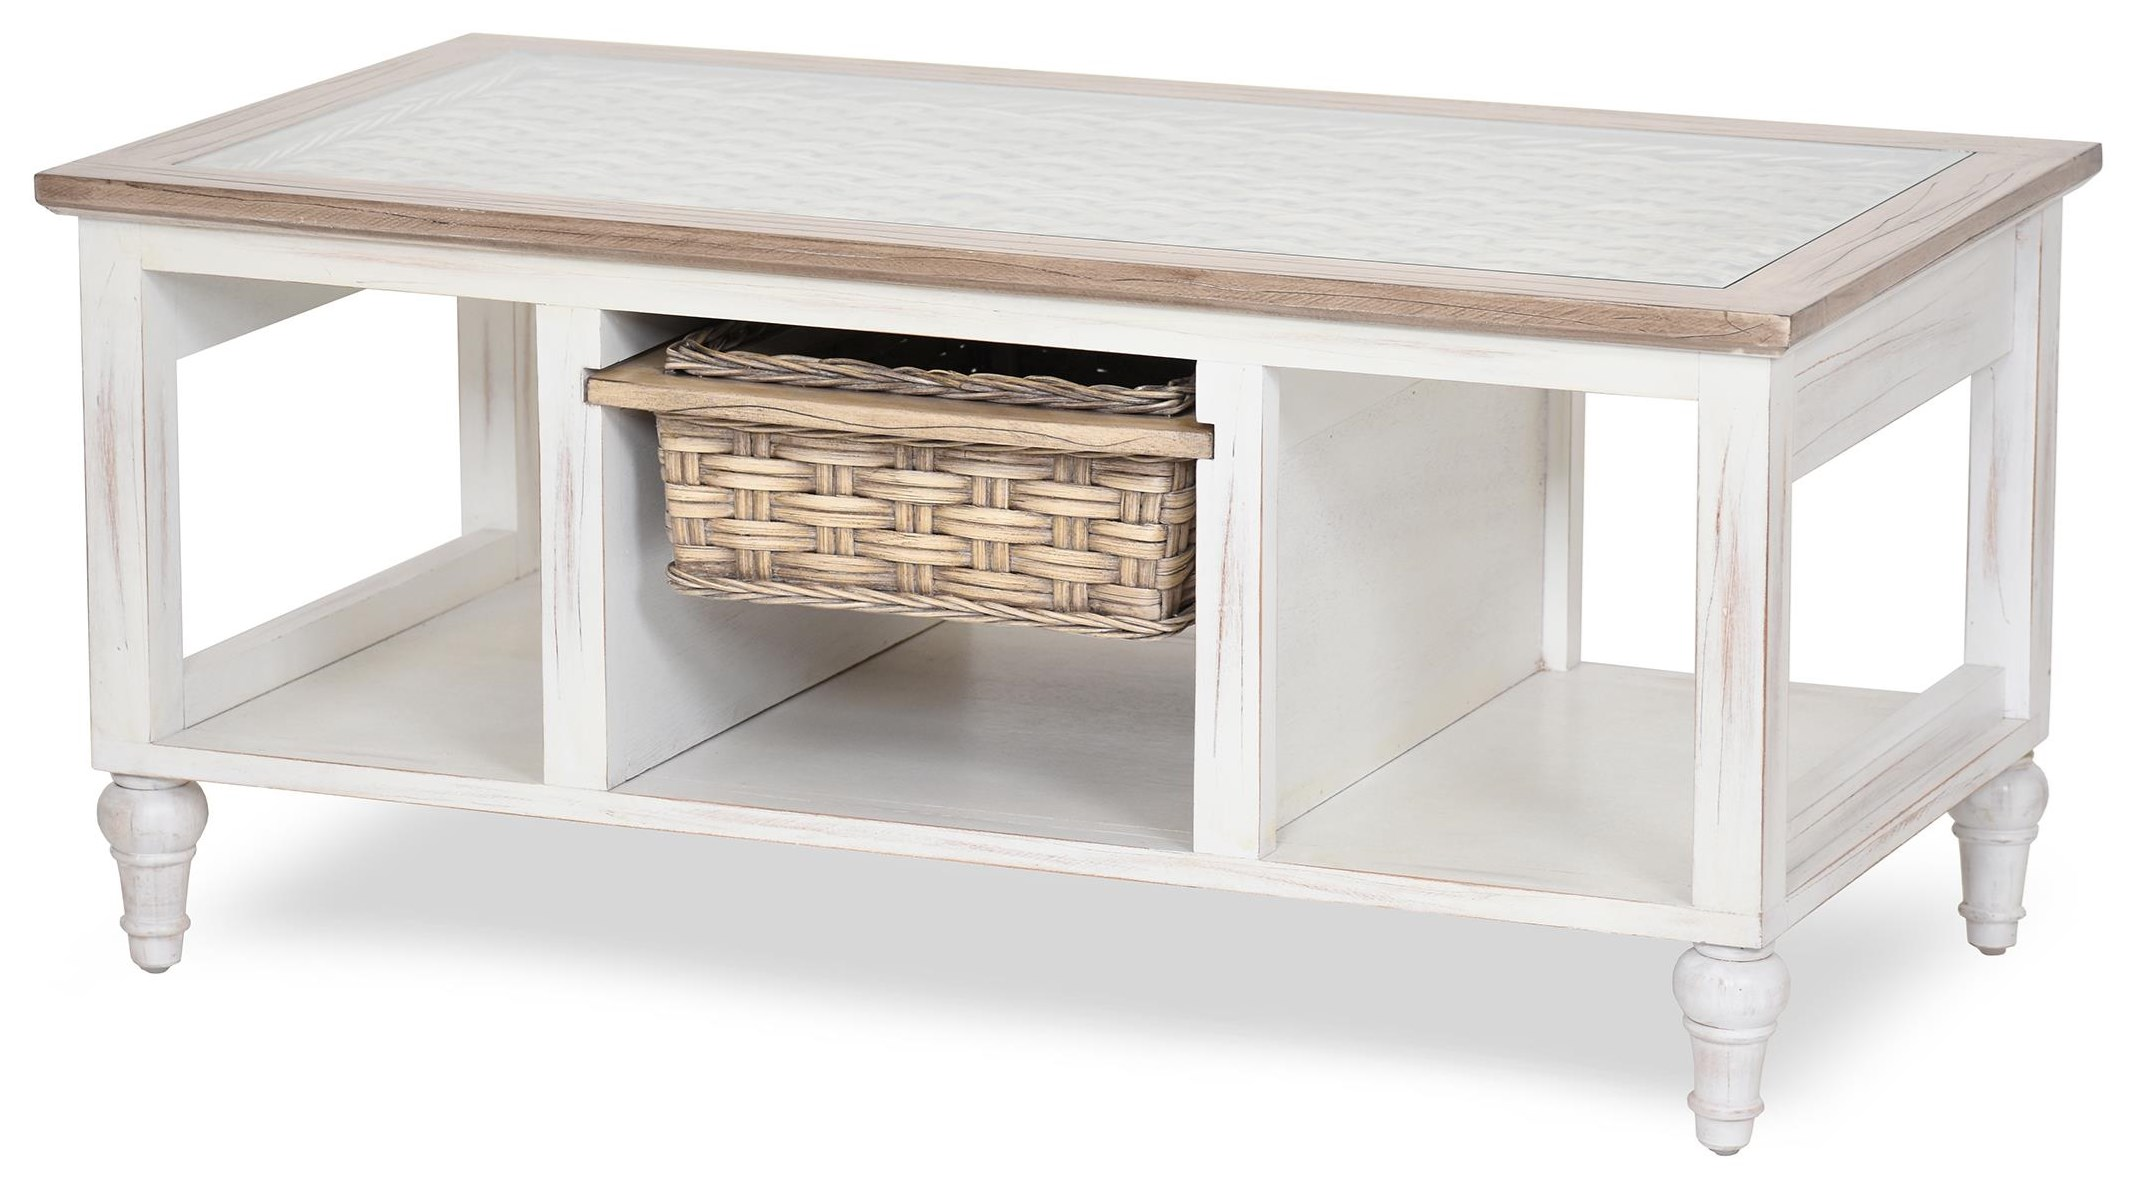 island breeze coffee table by Sea Winds Trading Company at Johnny Janosik